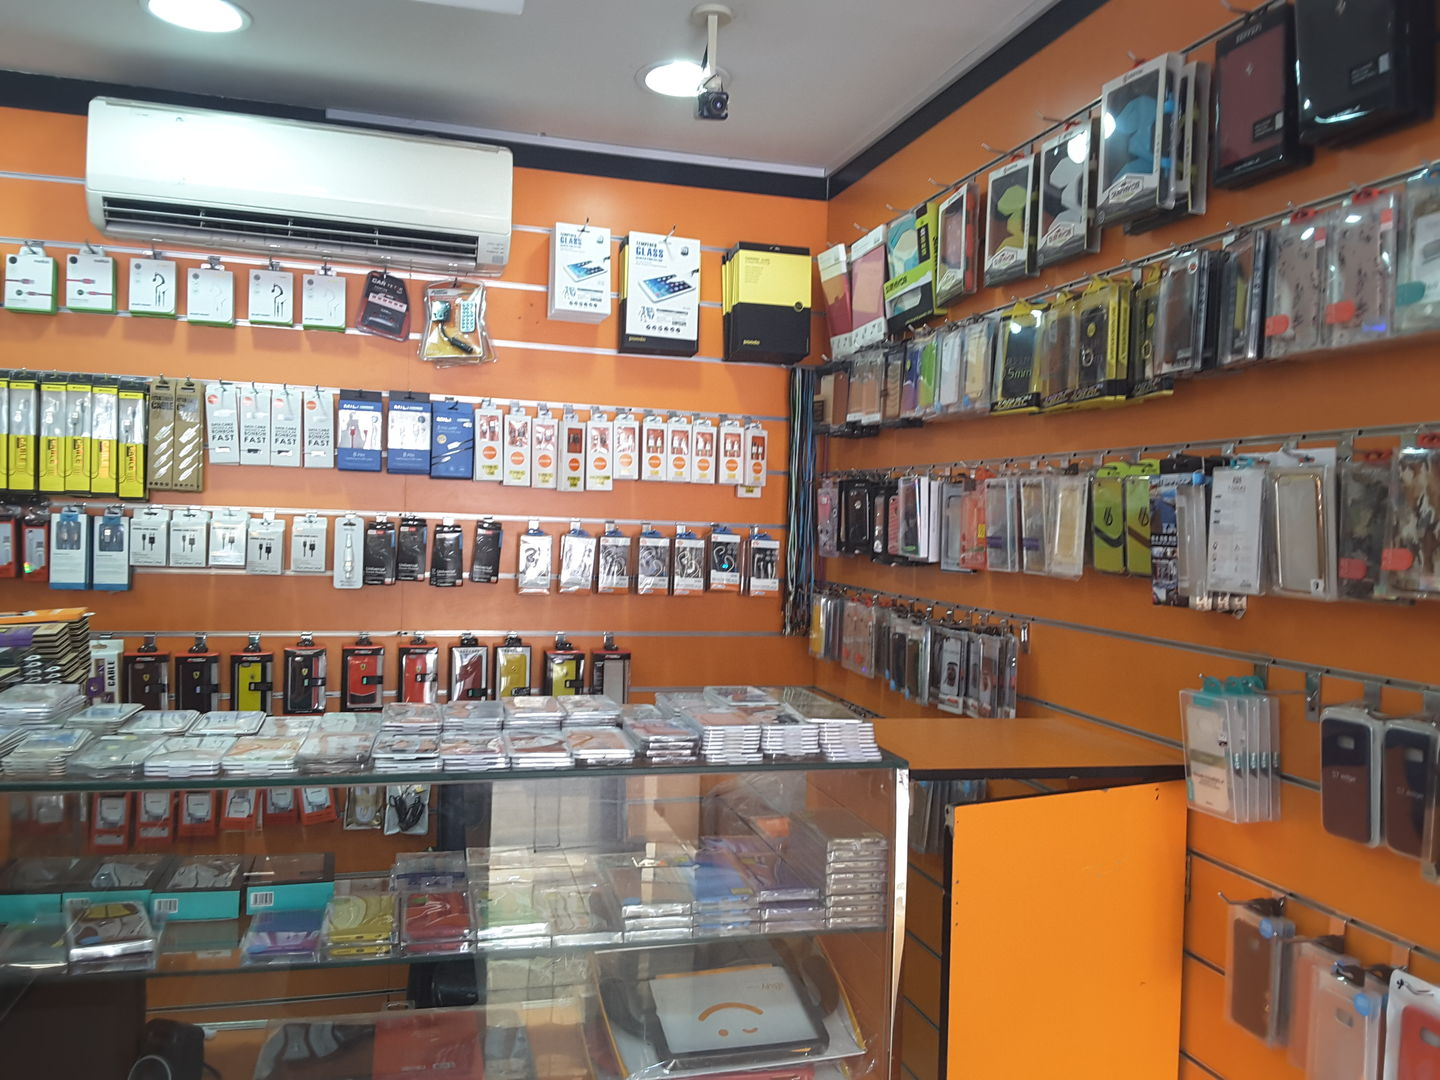 HiDubai-business-yasmin-mobile-phones-shopping-consumer-electronics-al-rashidiya-dubai-2